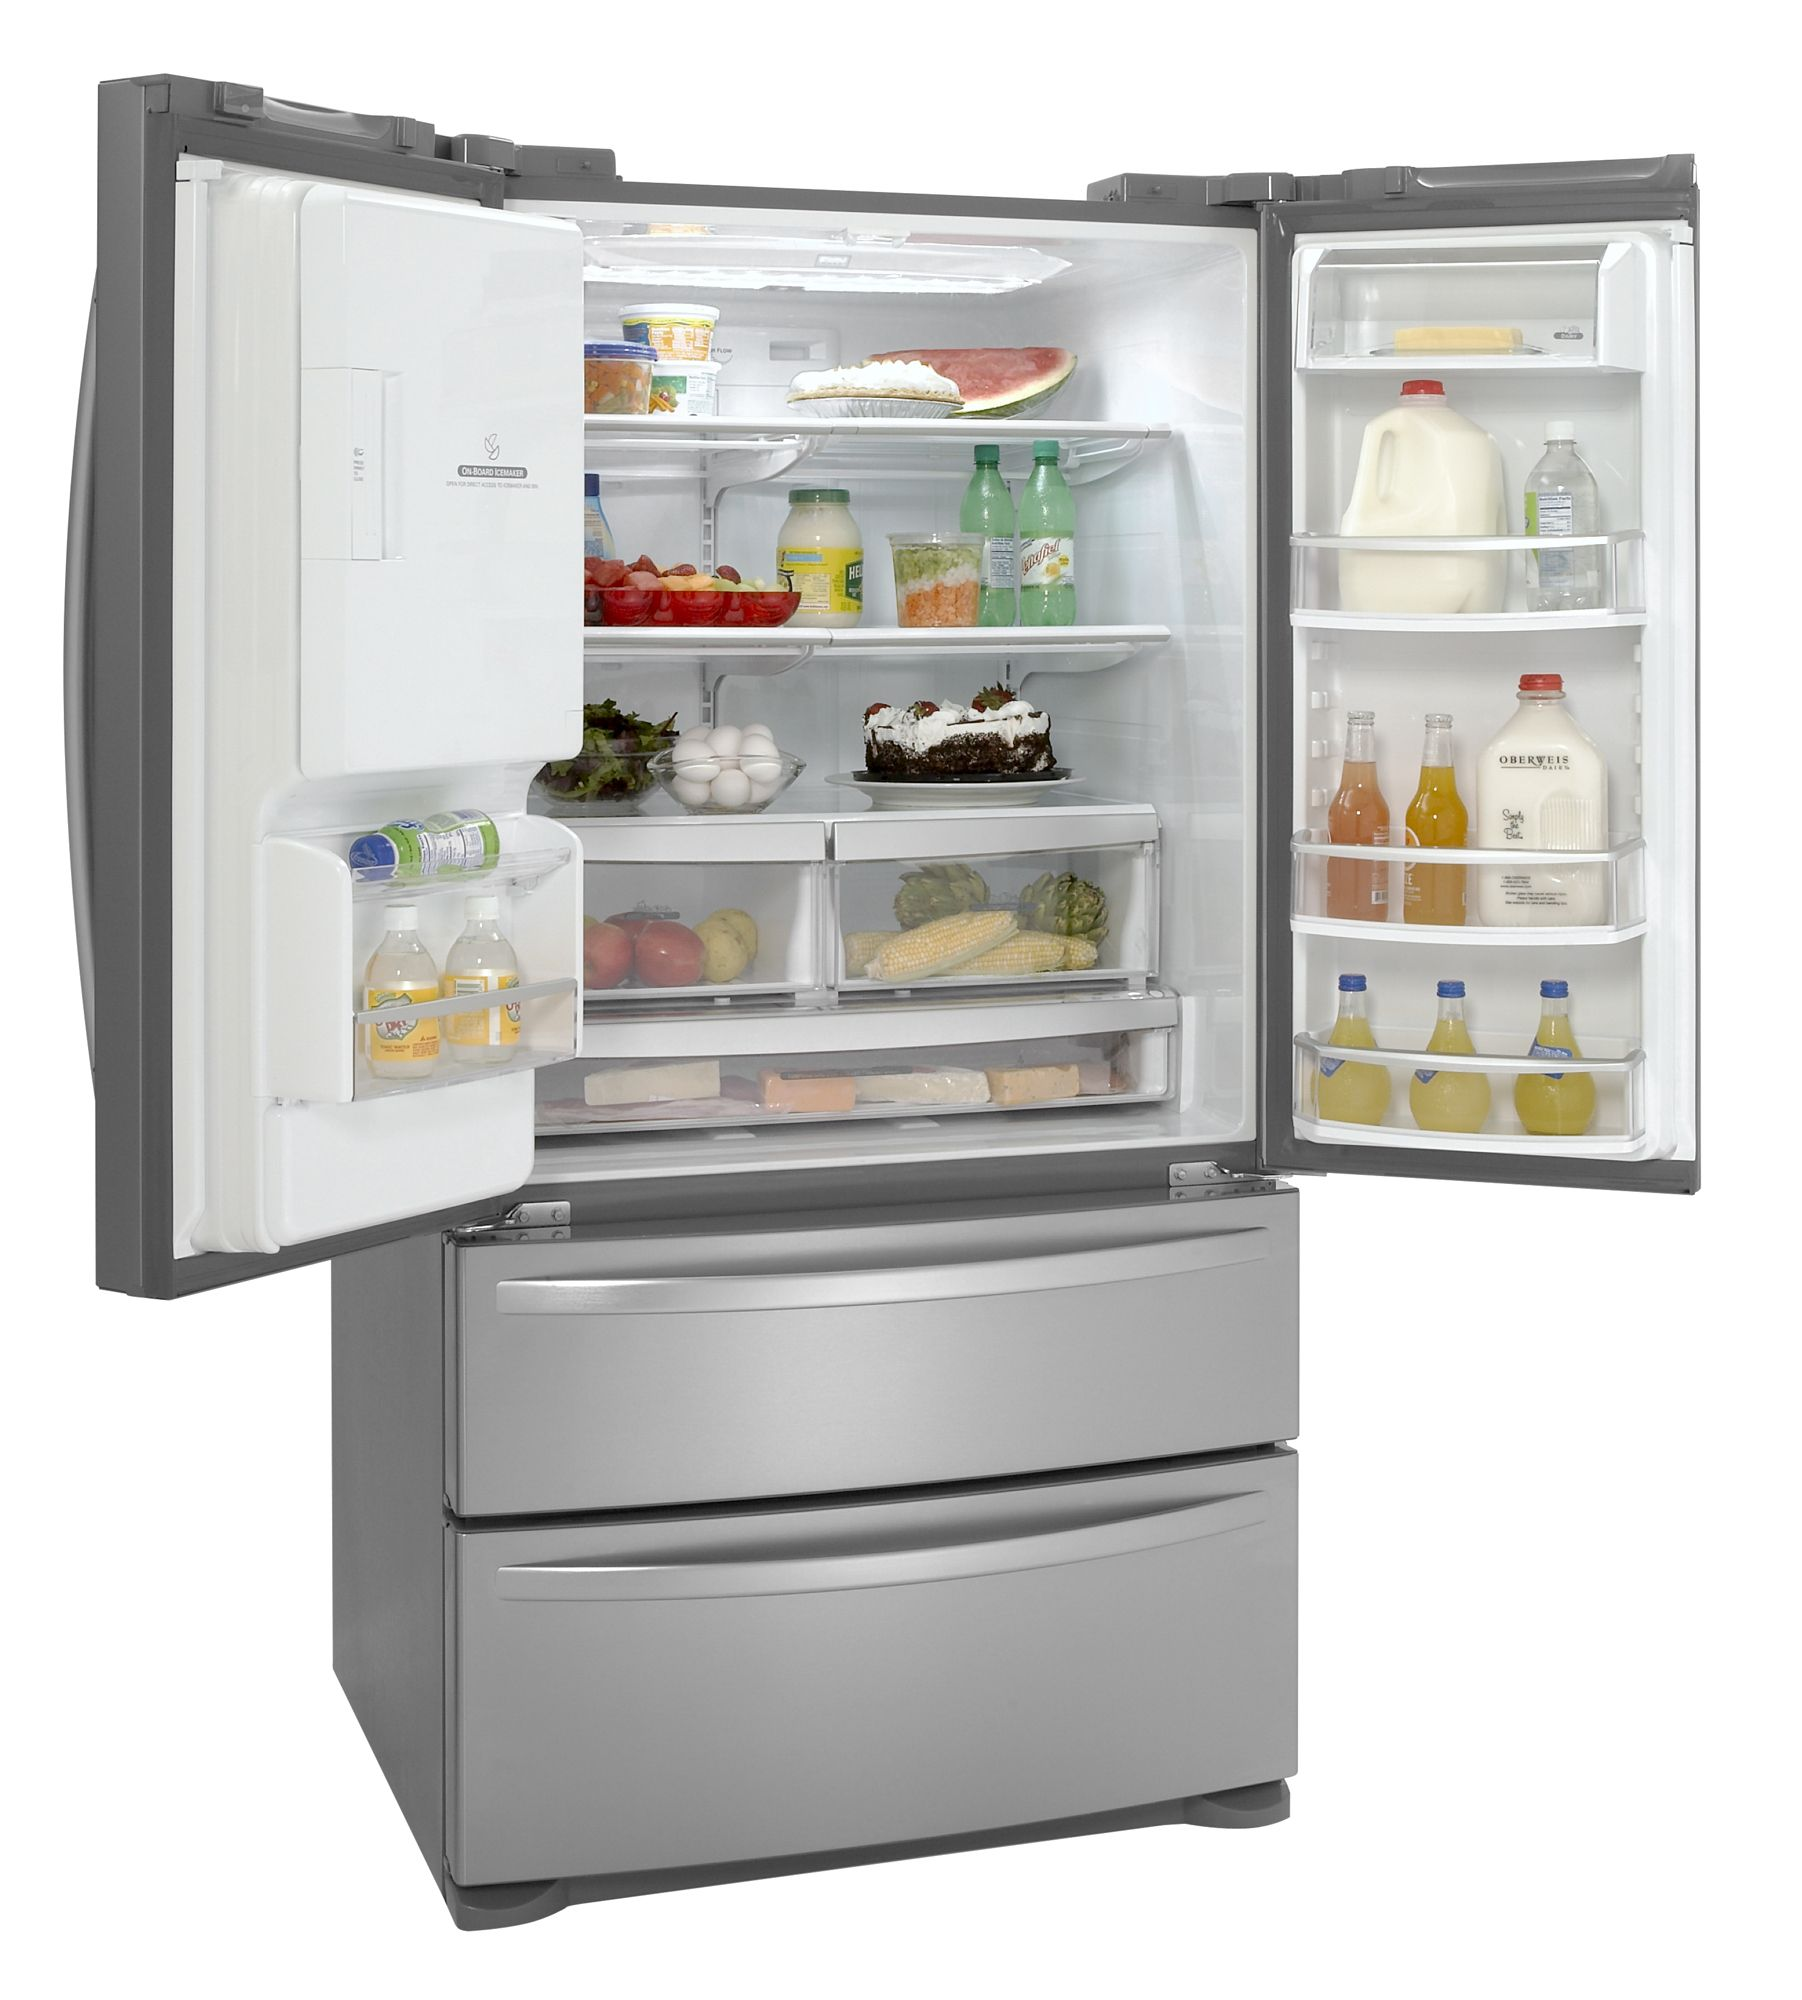 Kenmore Elite 27.5 cu. ft. French-Door Bottom Freezer Refrigerator (7977)